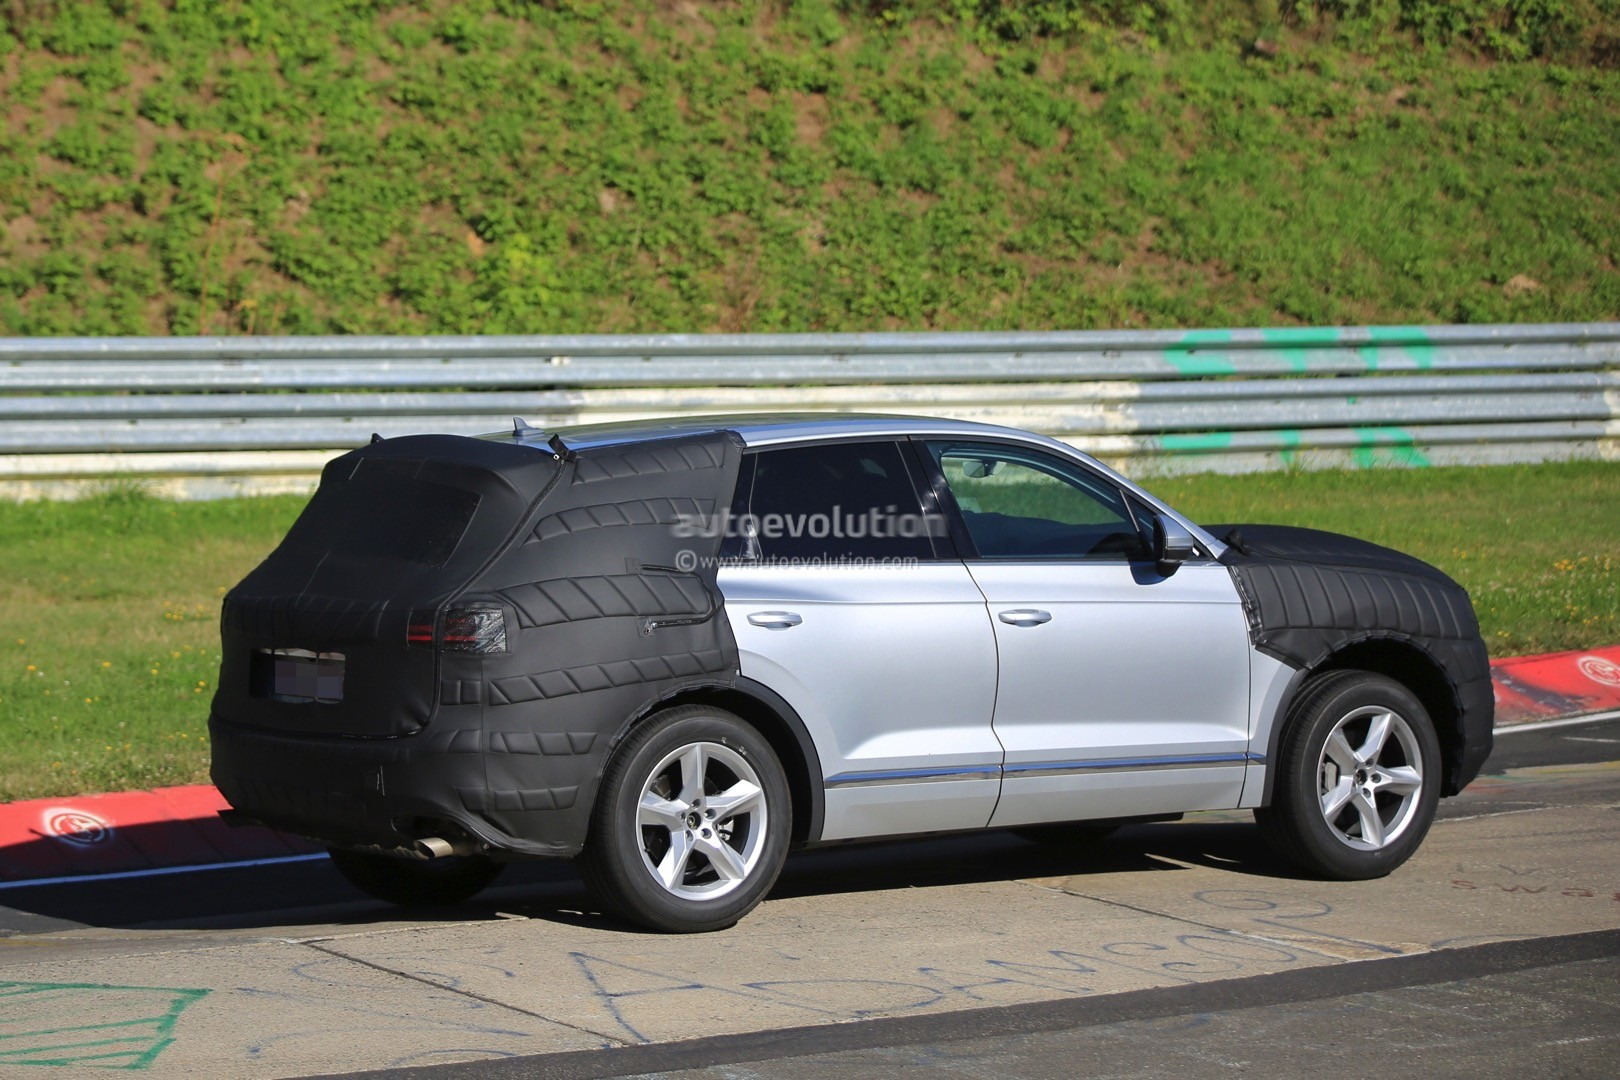 2018 Volkswagen Touareg Spied In Production Ready Form